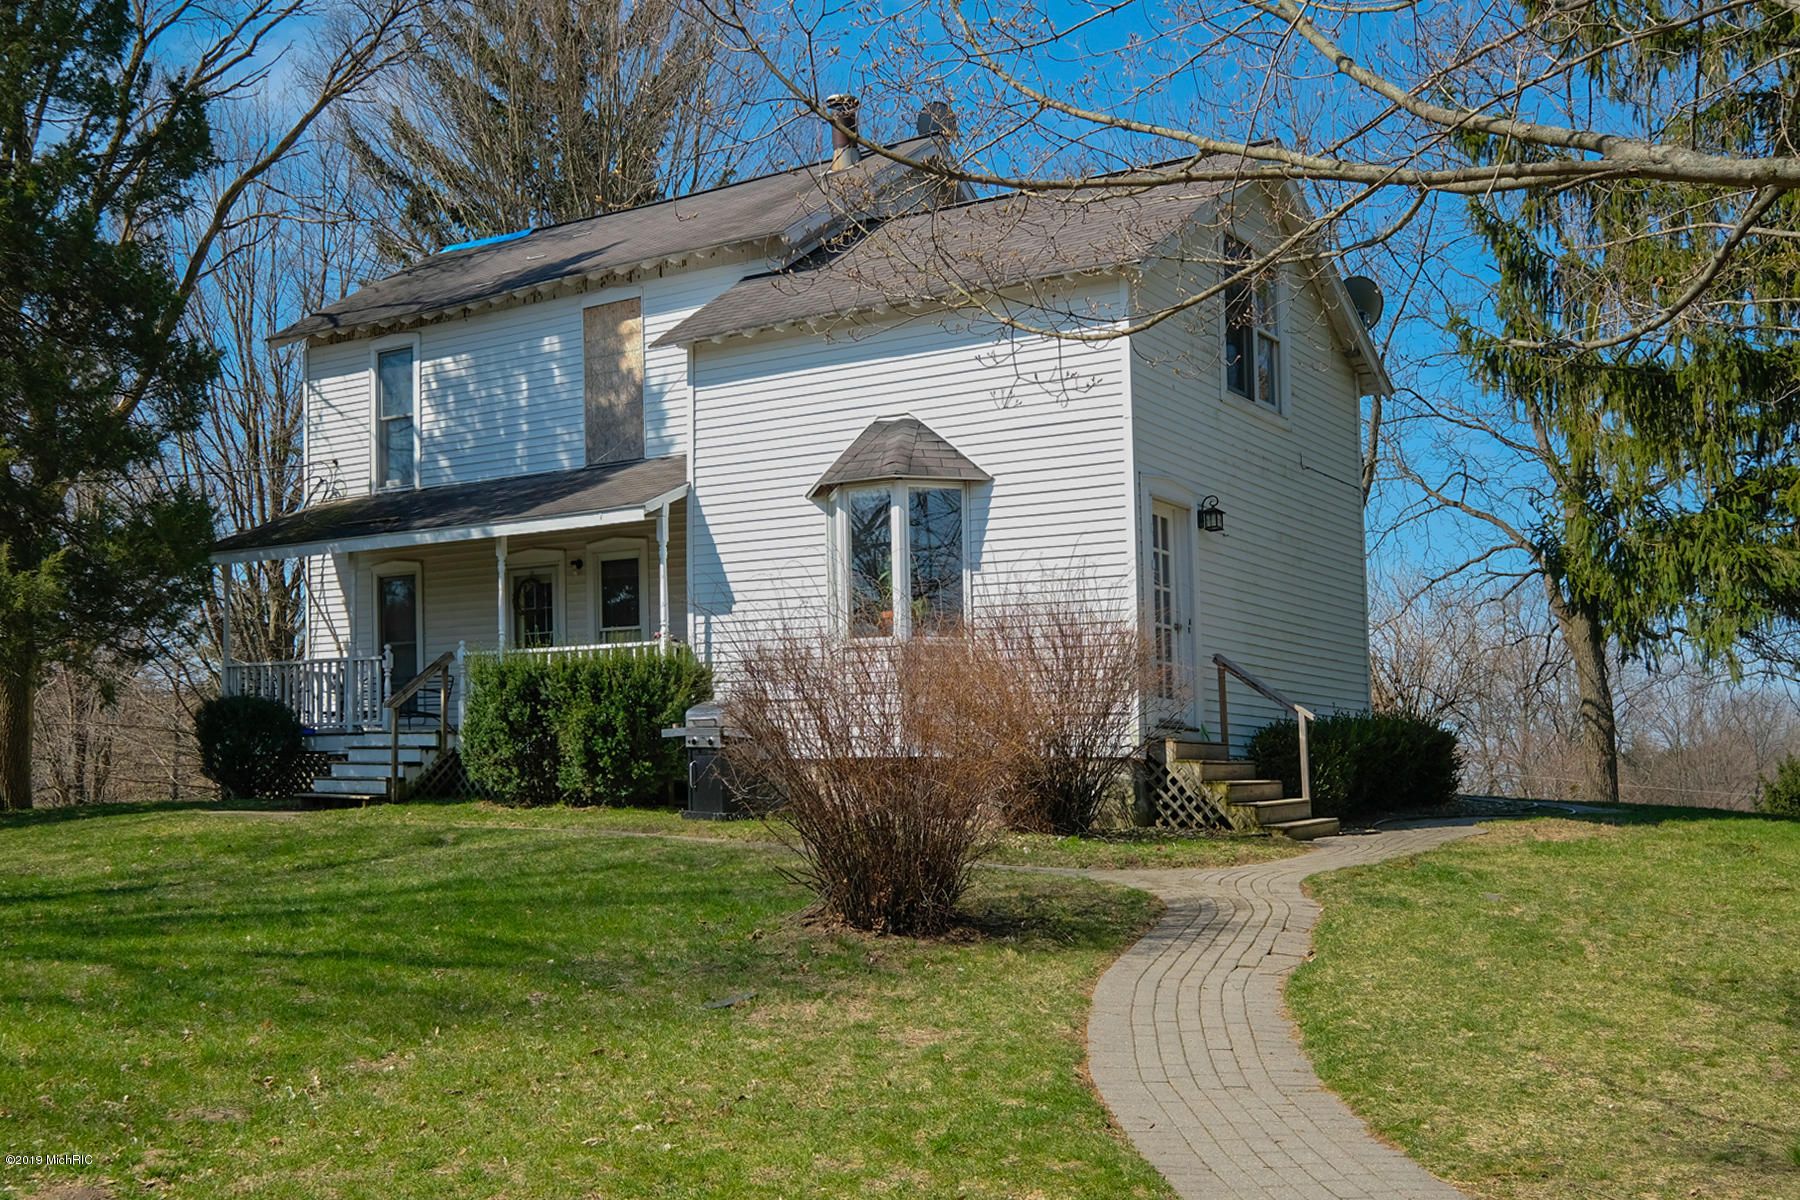 Photo for 25456 Co Rd 358, Lawton, MI 49065 (MLS # 19015362)